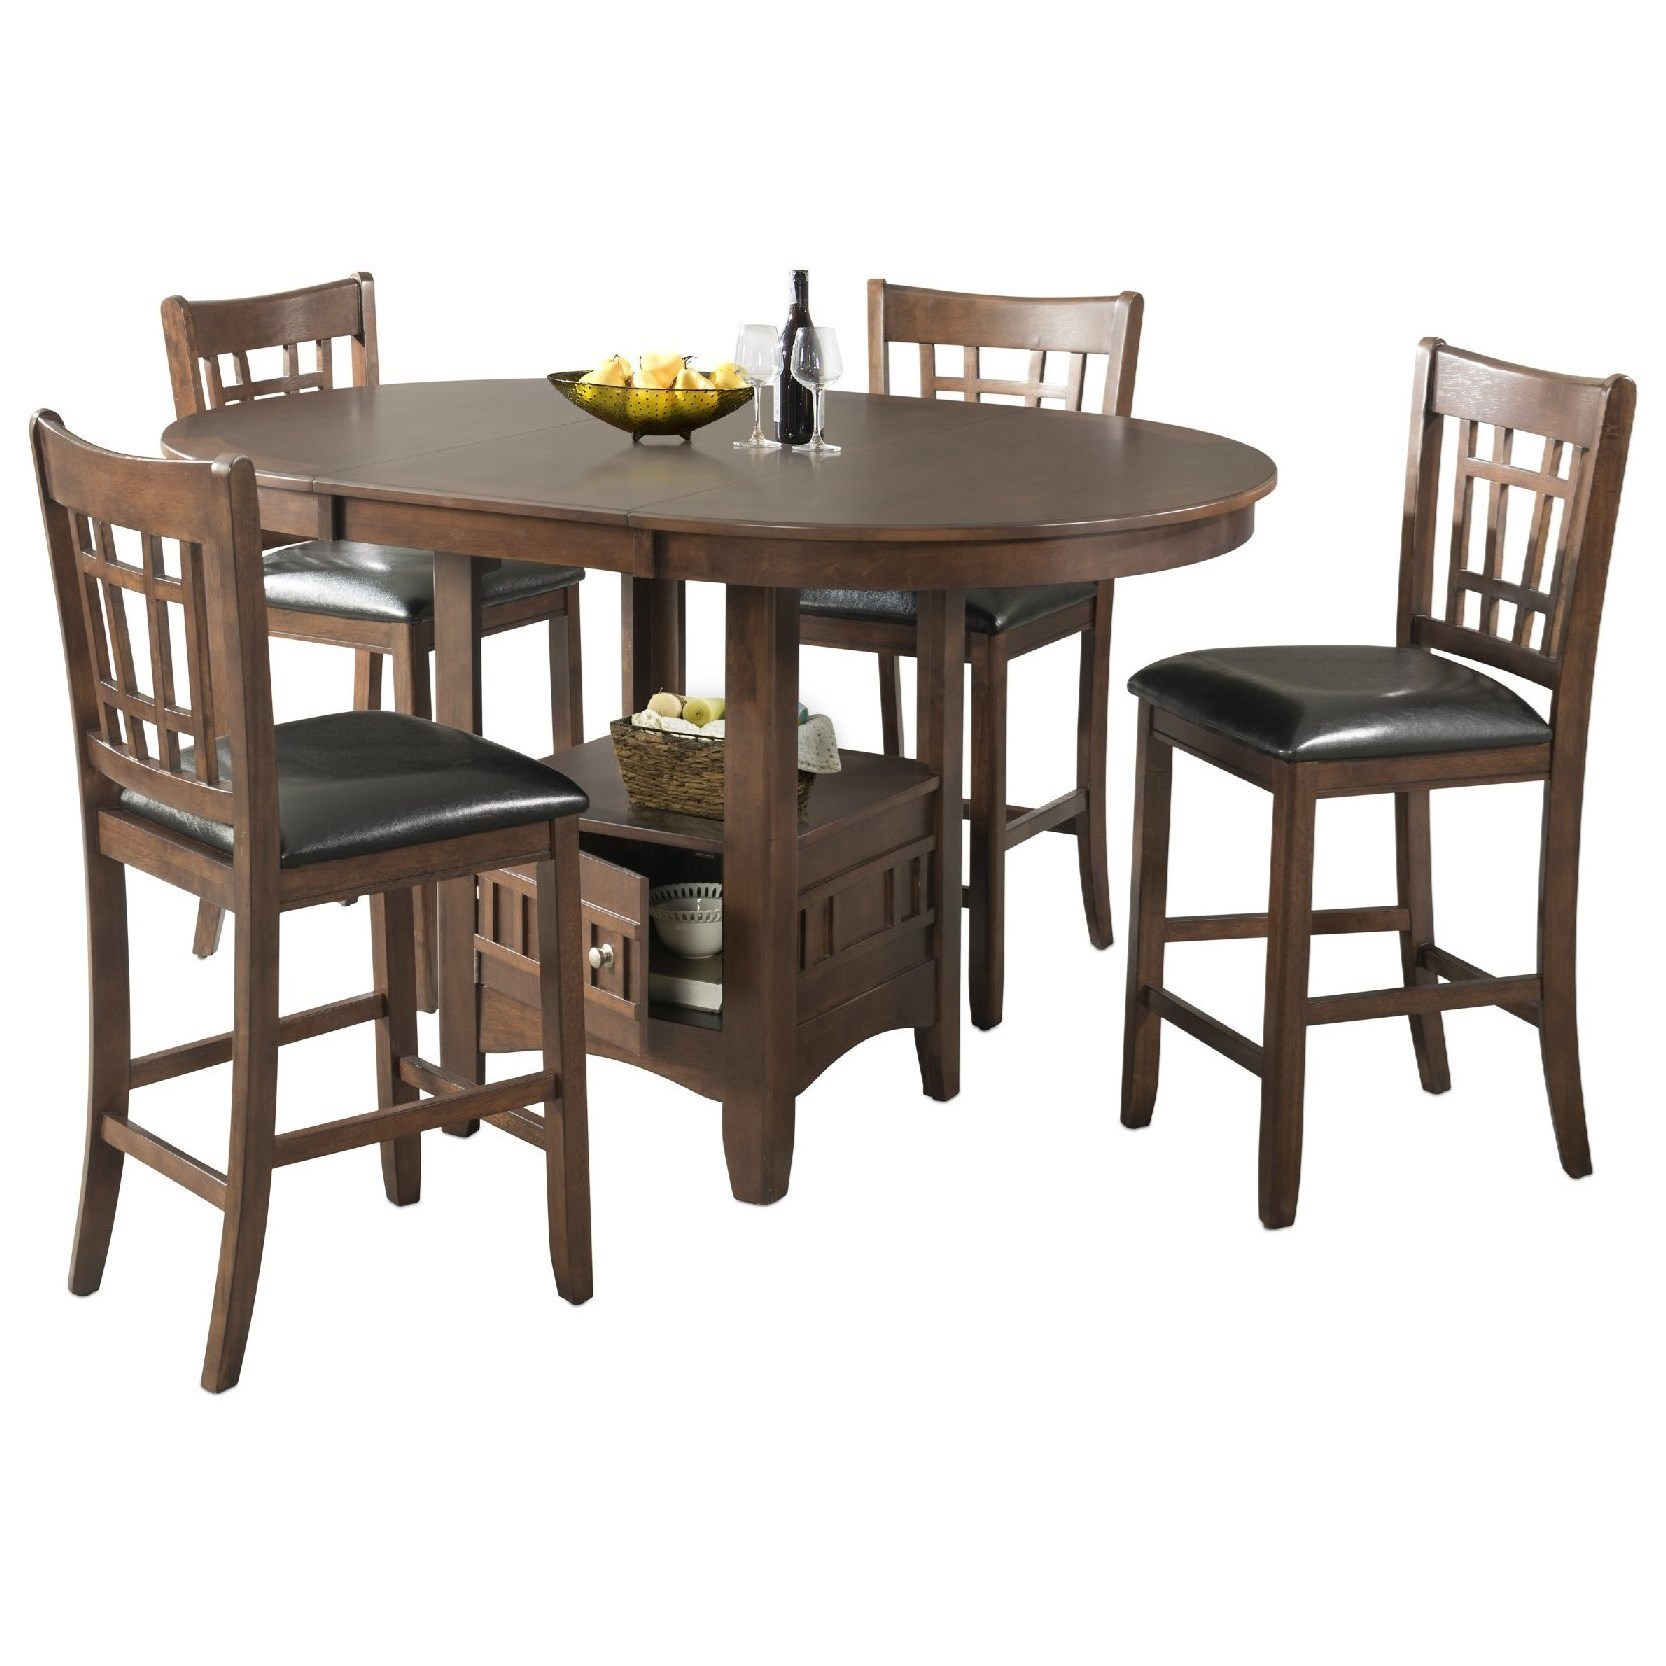 Bar Height Table And Chairs Max Casual Counter Height Table Set By Elements International At Miskelly Furniture